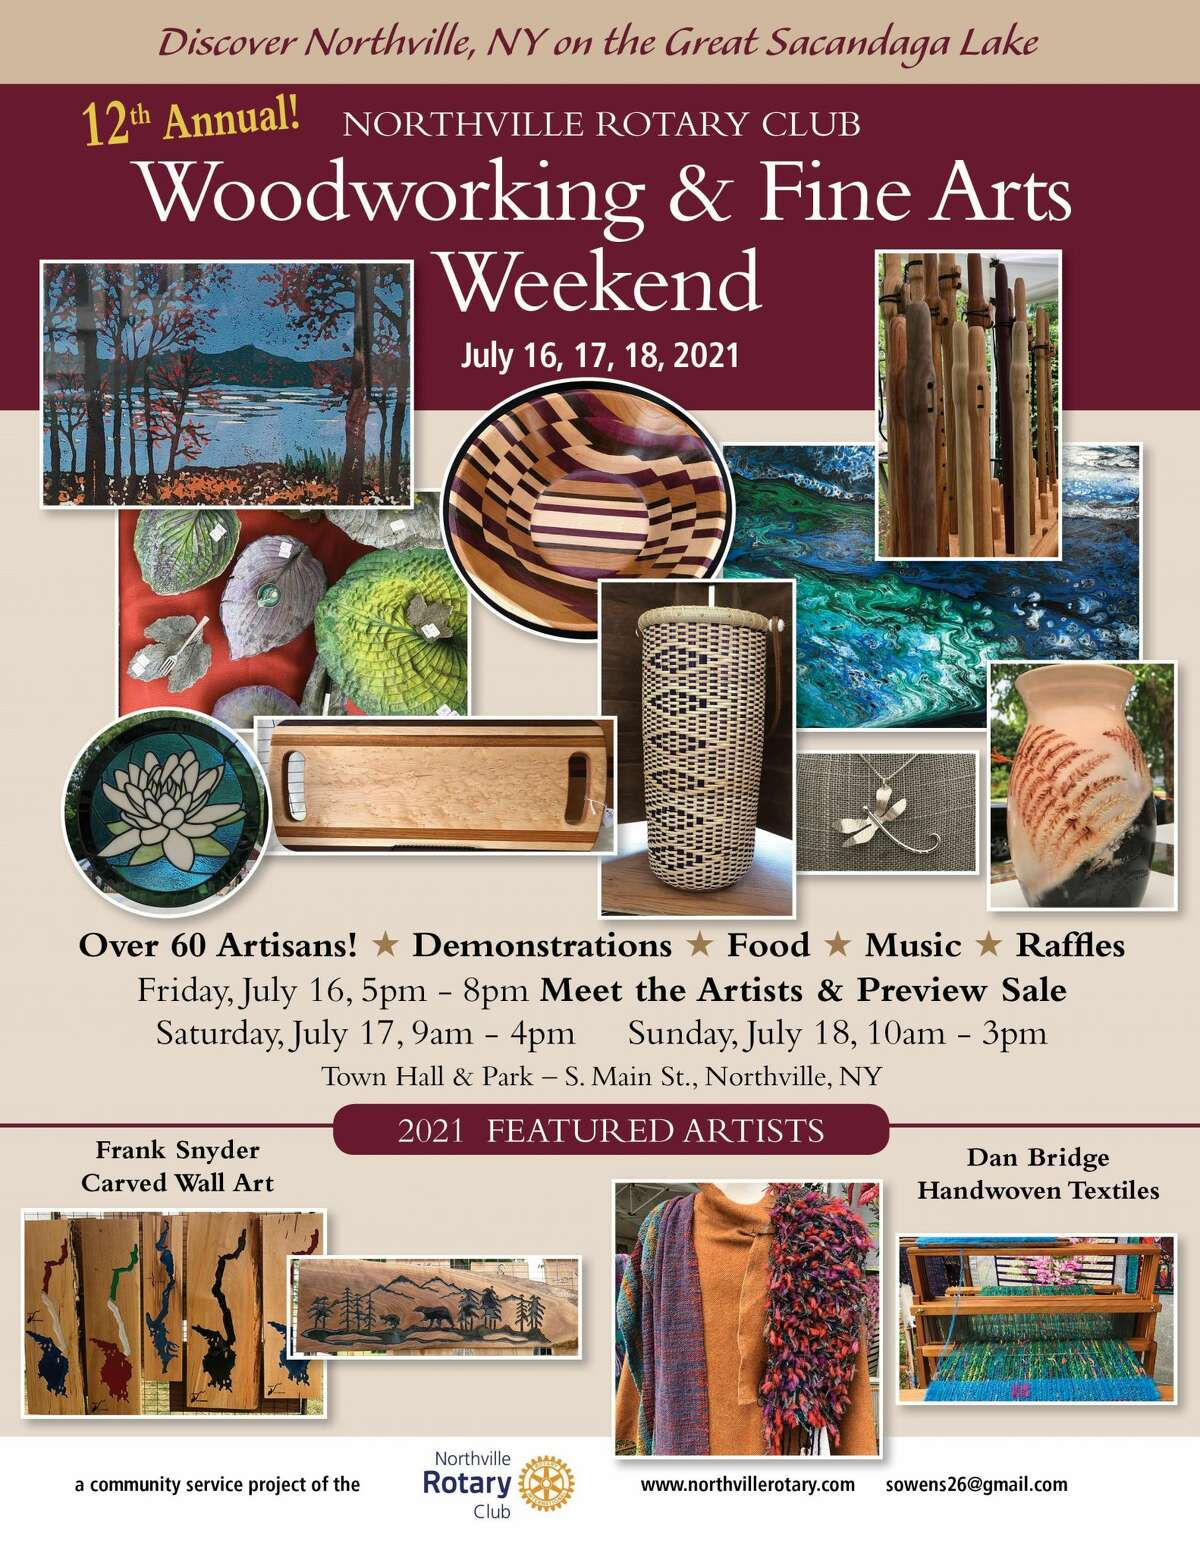 Northville will again host a wooodworking and fine arts weekend in July.